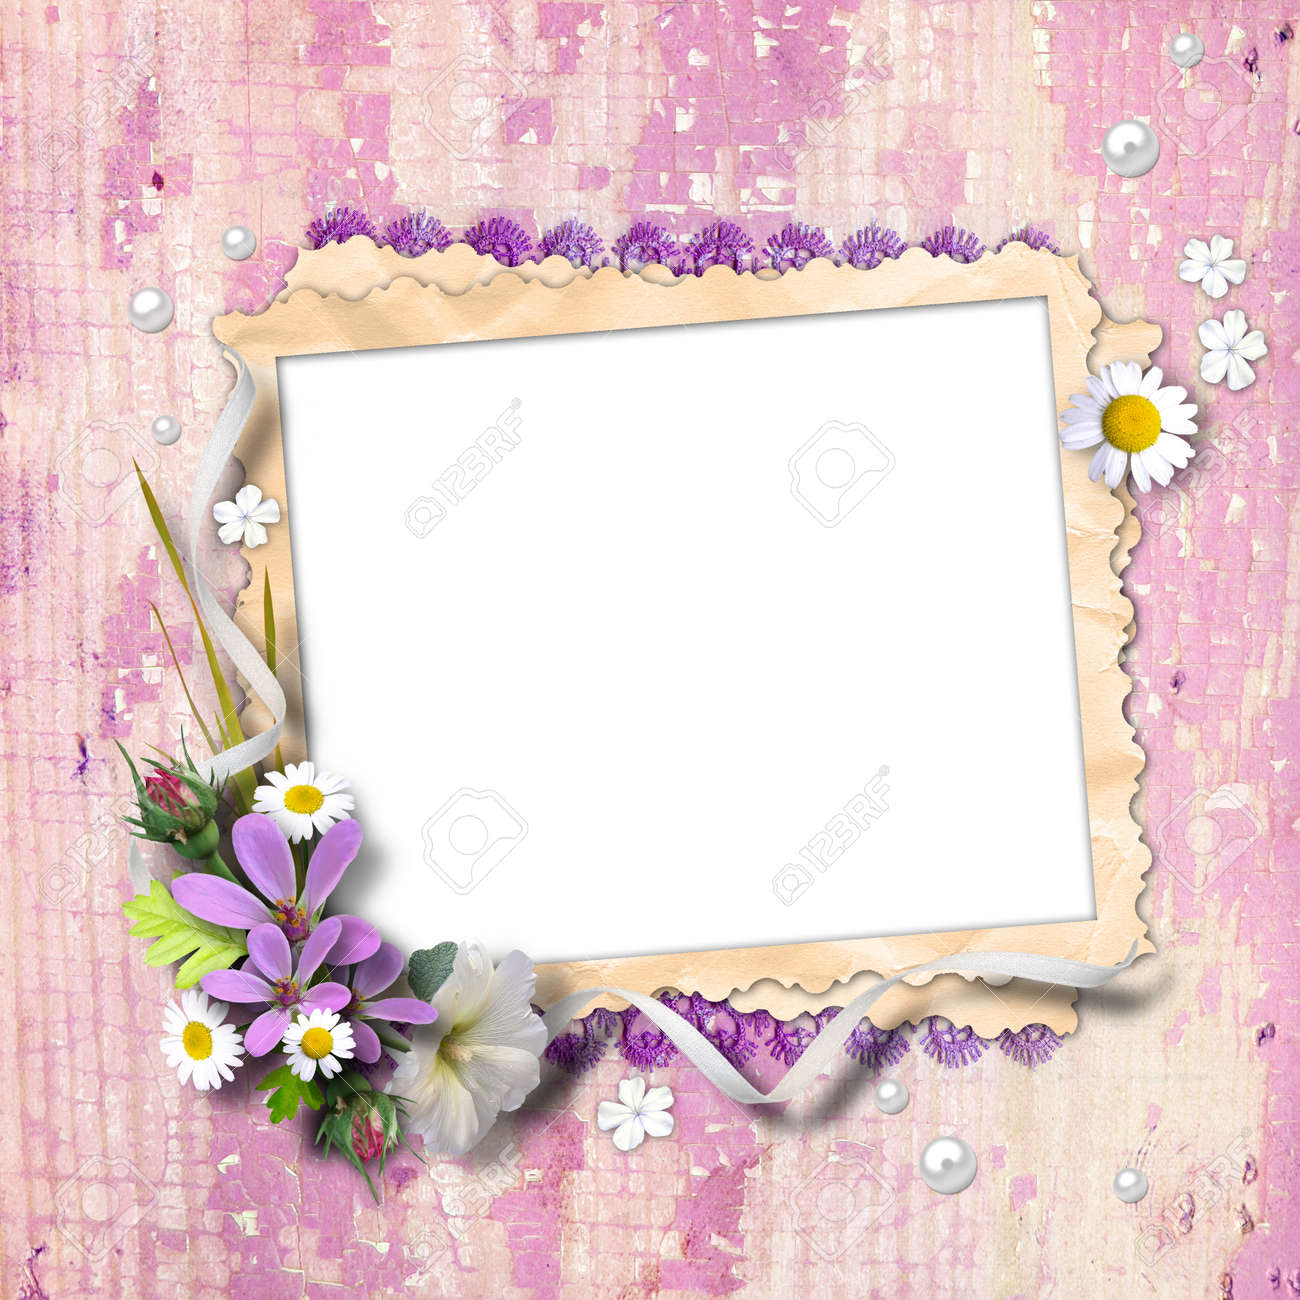 Retro photo framework with flowers on textured background vintage. Page to design photo books Stock Photo - 12650551